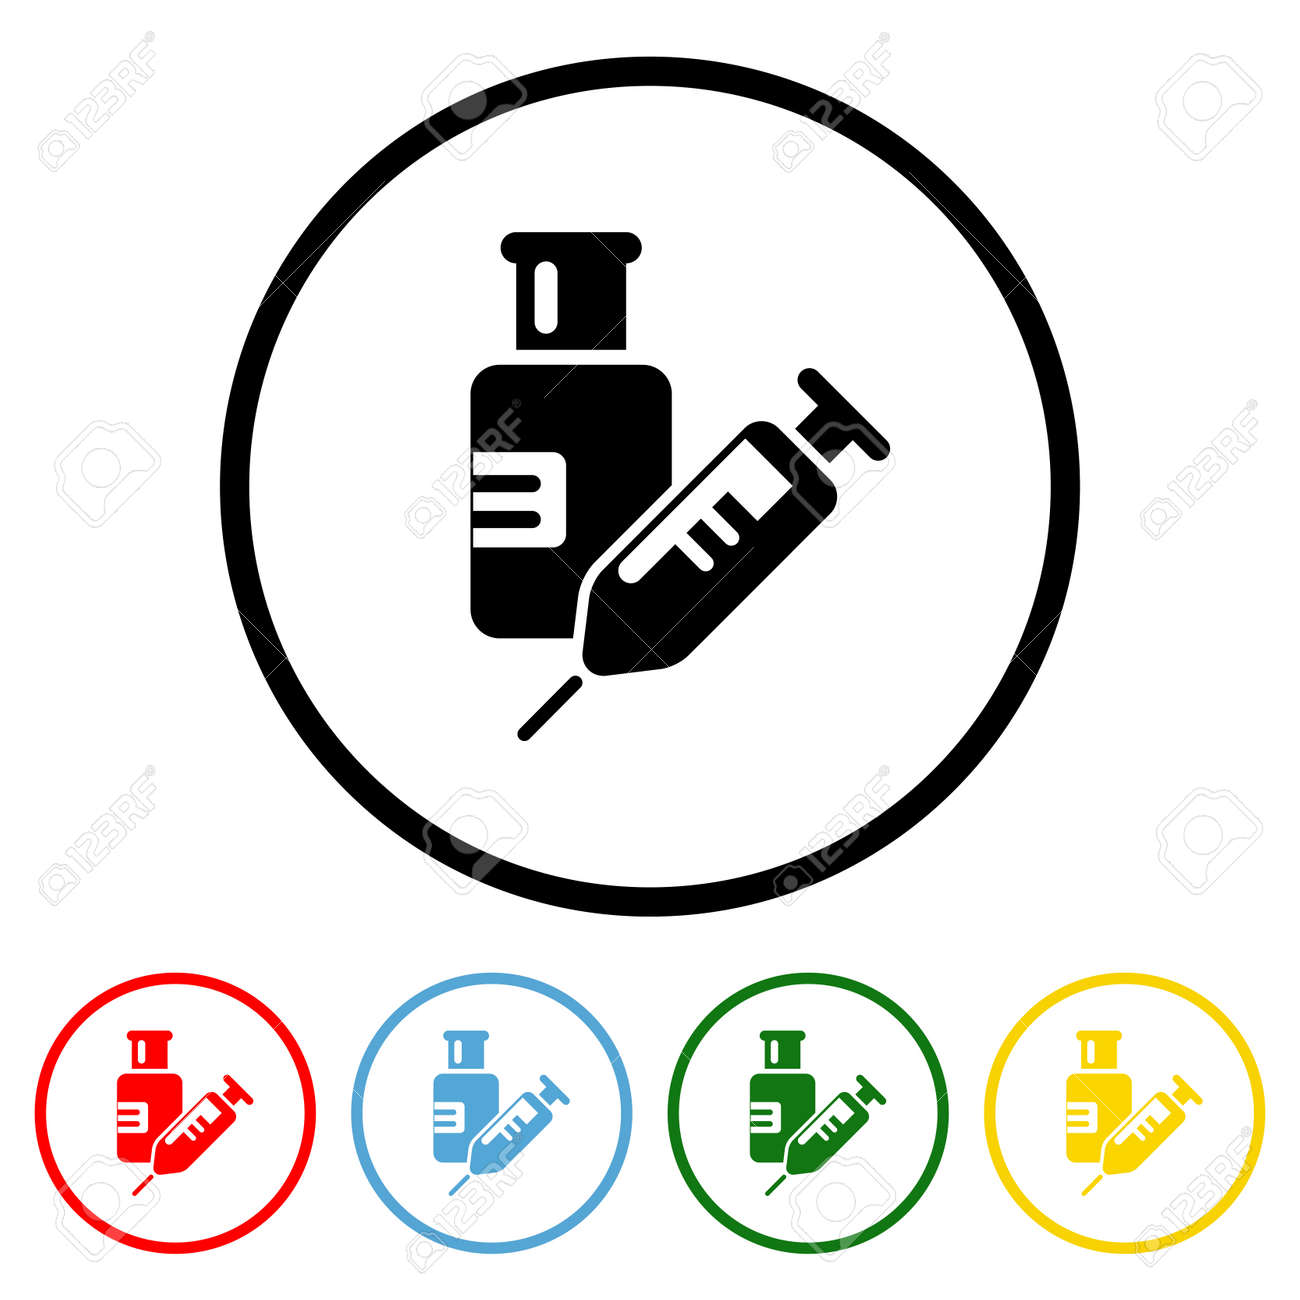 Vaccine icon vector illustration design element with four color variations. Vector illustration. All in a single layer. Elements for design. - 172142927